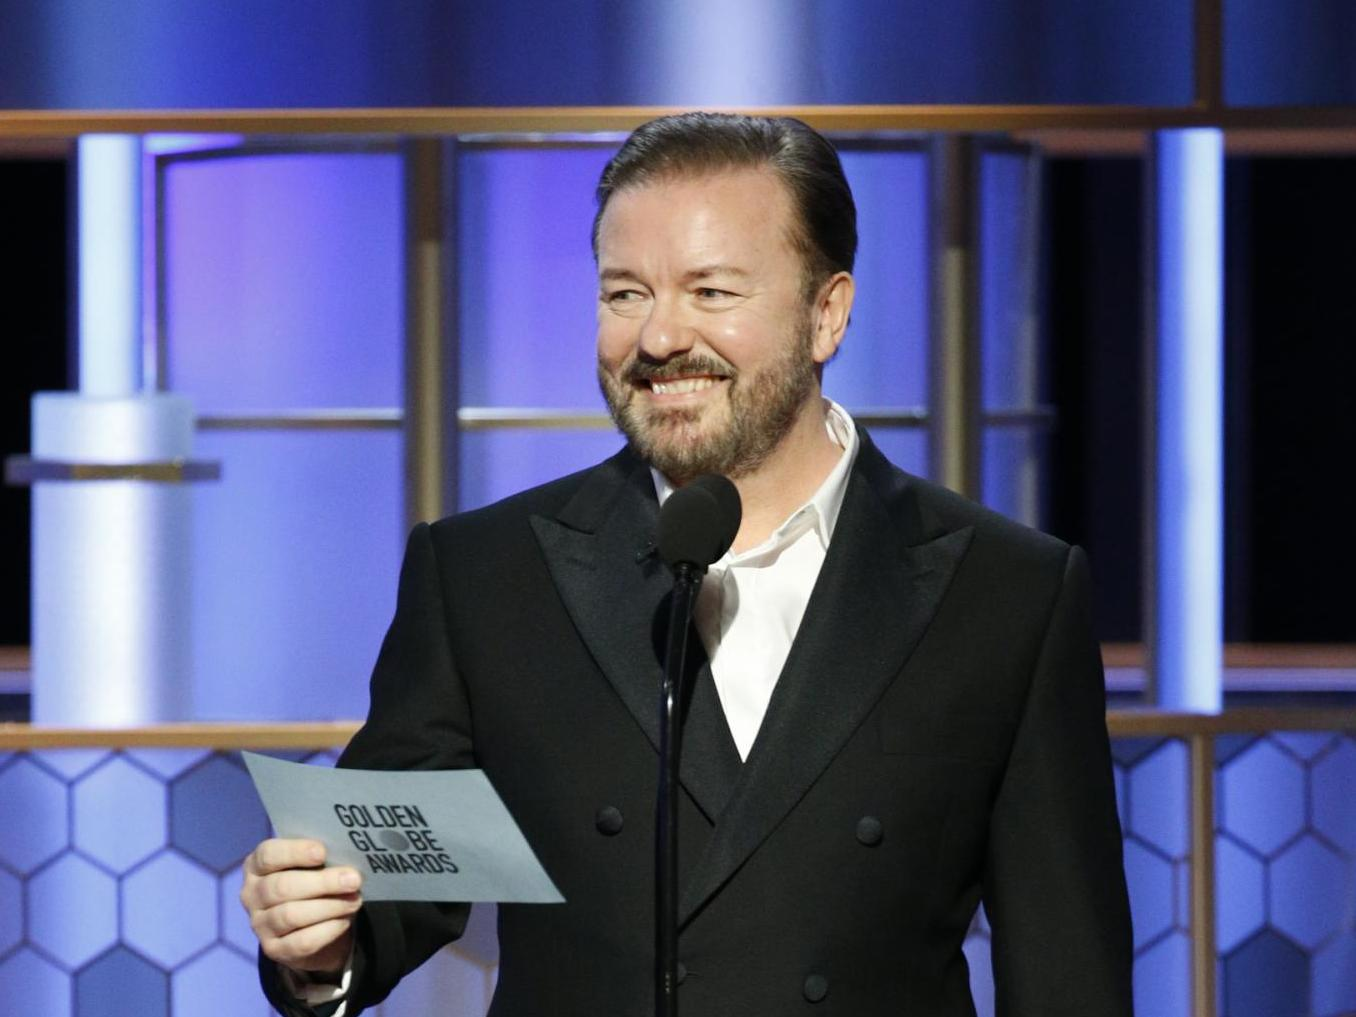 Golden Globes 2020: Read Ricky Gervais's brutal opening monologue in full